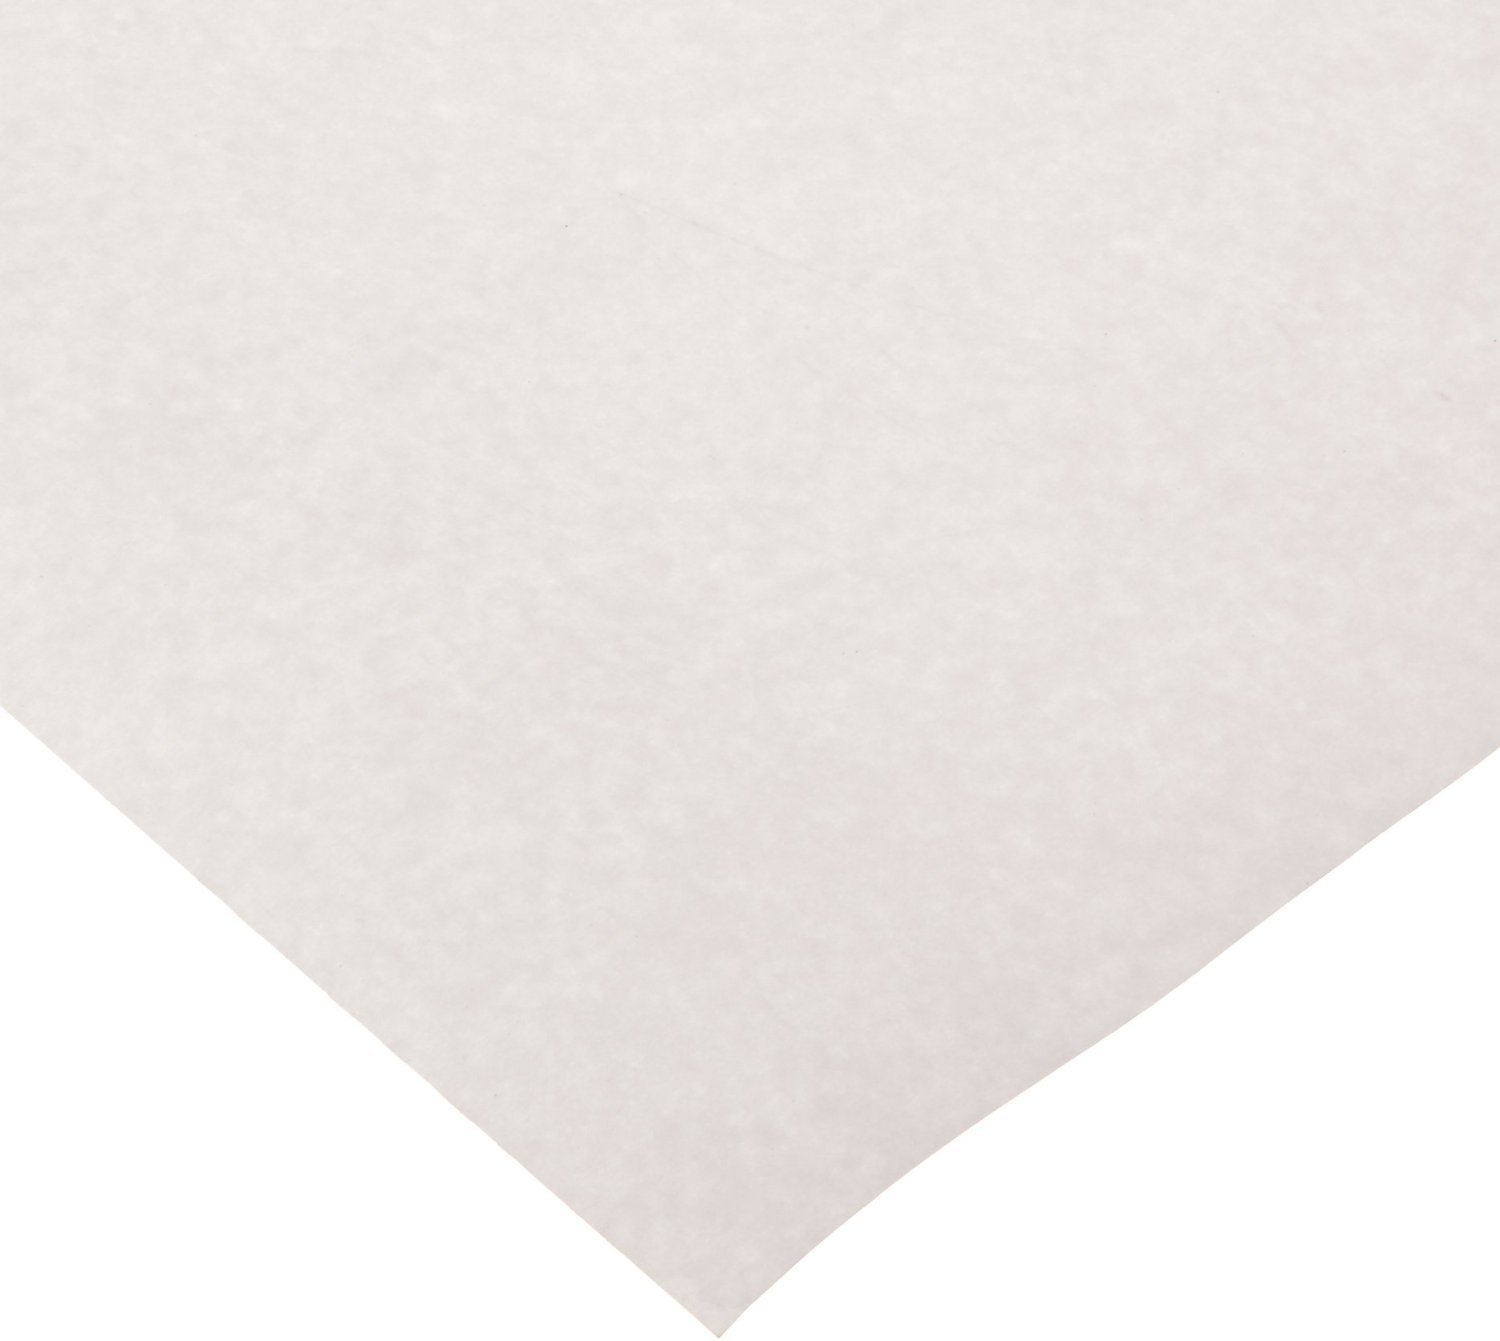 Labconco 3894200 Paper Liners for Protector Evidence Drying Cabinets (Pack of 100)